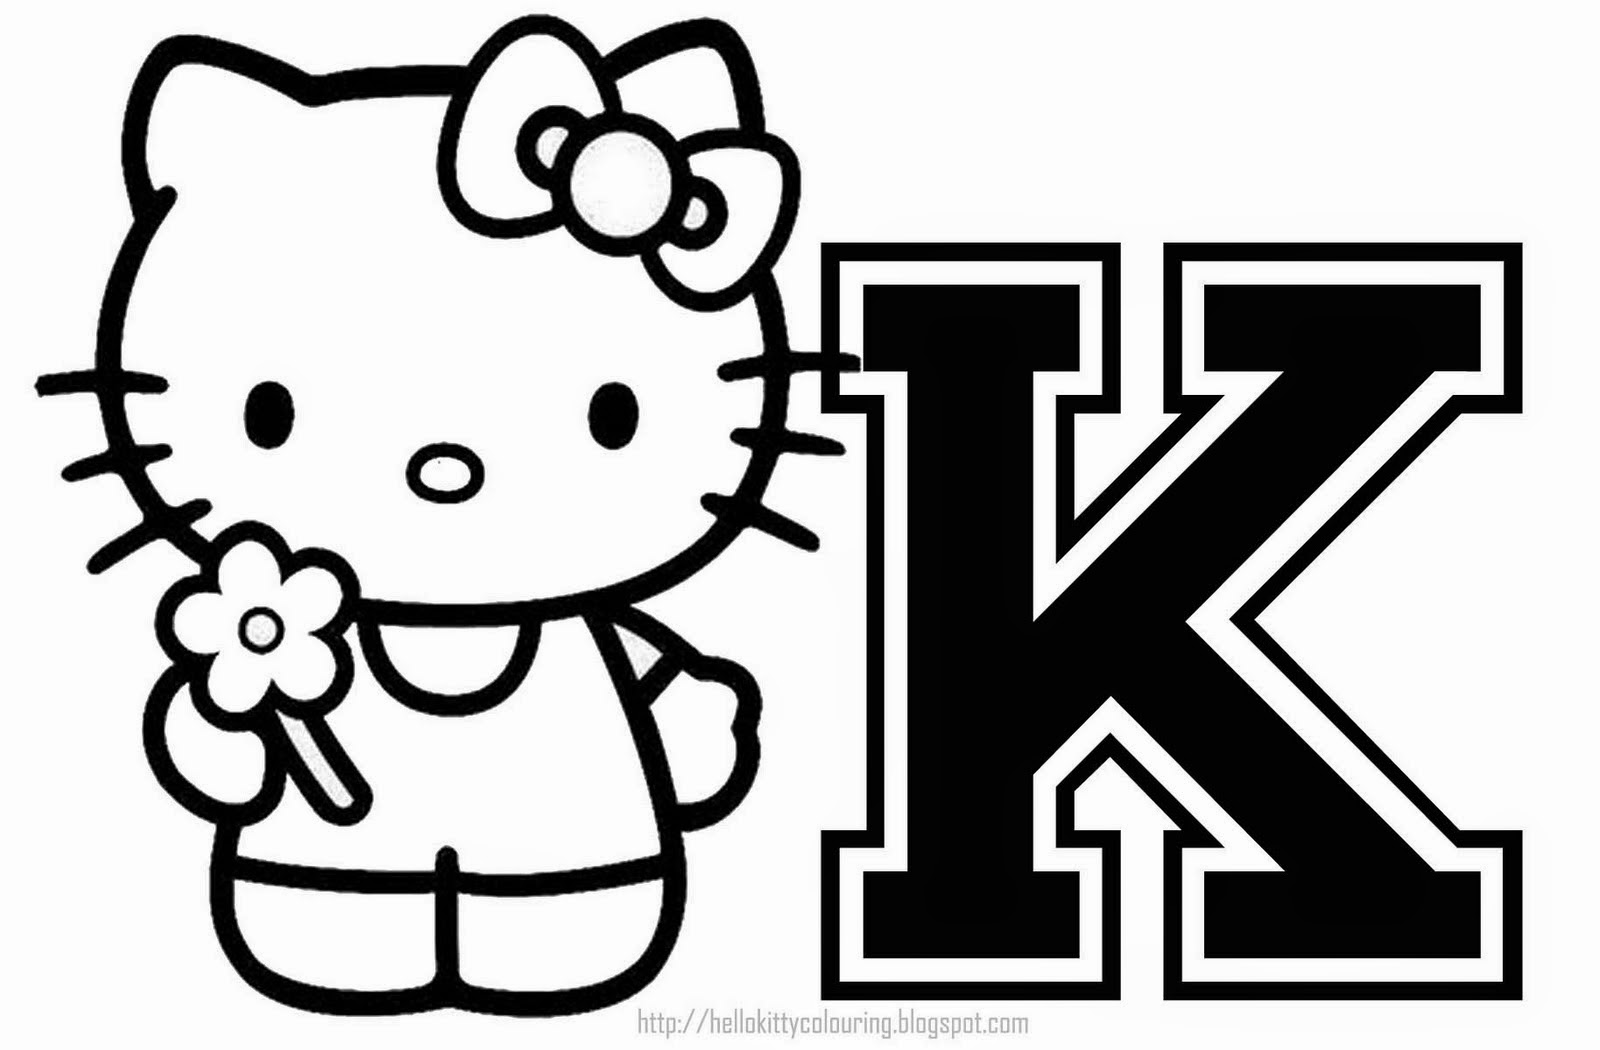 Hello Kitty Abc Coloring Pages : Free printable hello kitty coloring pages fit to print